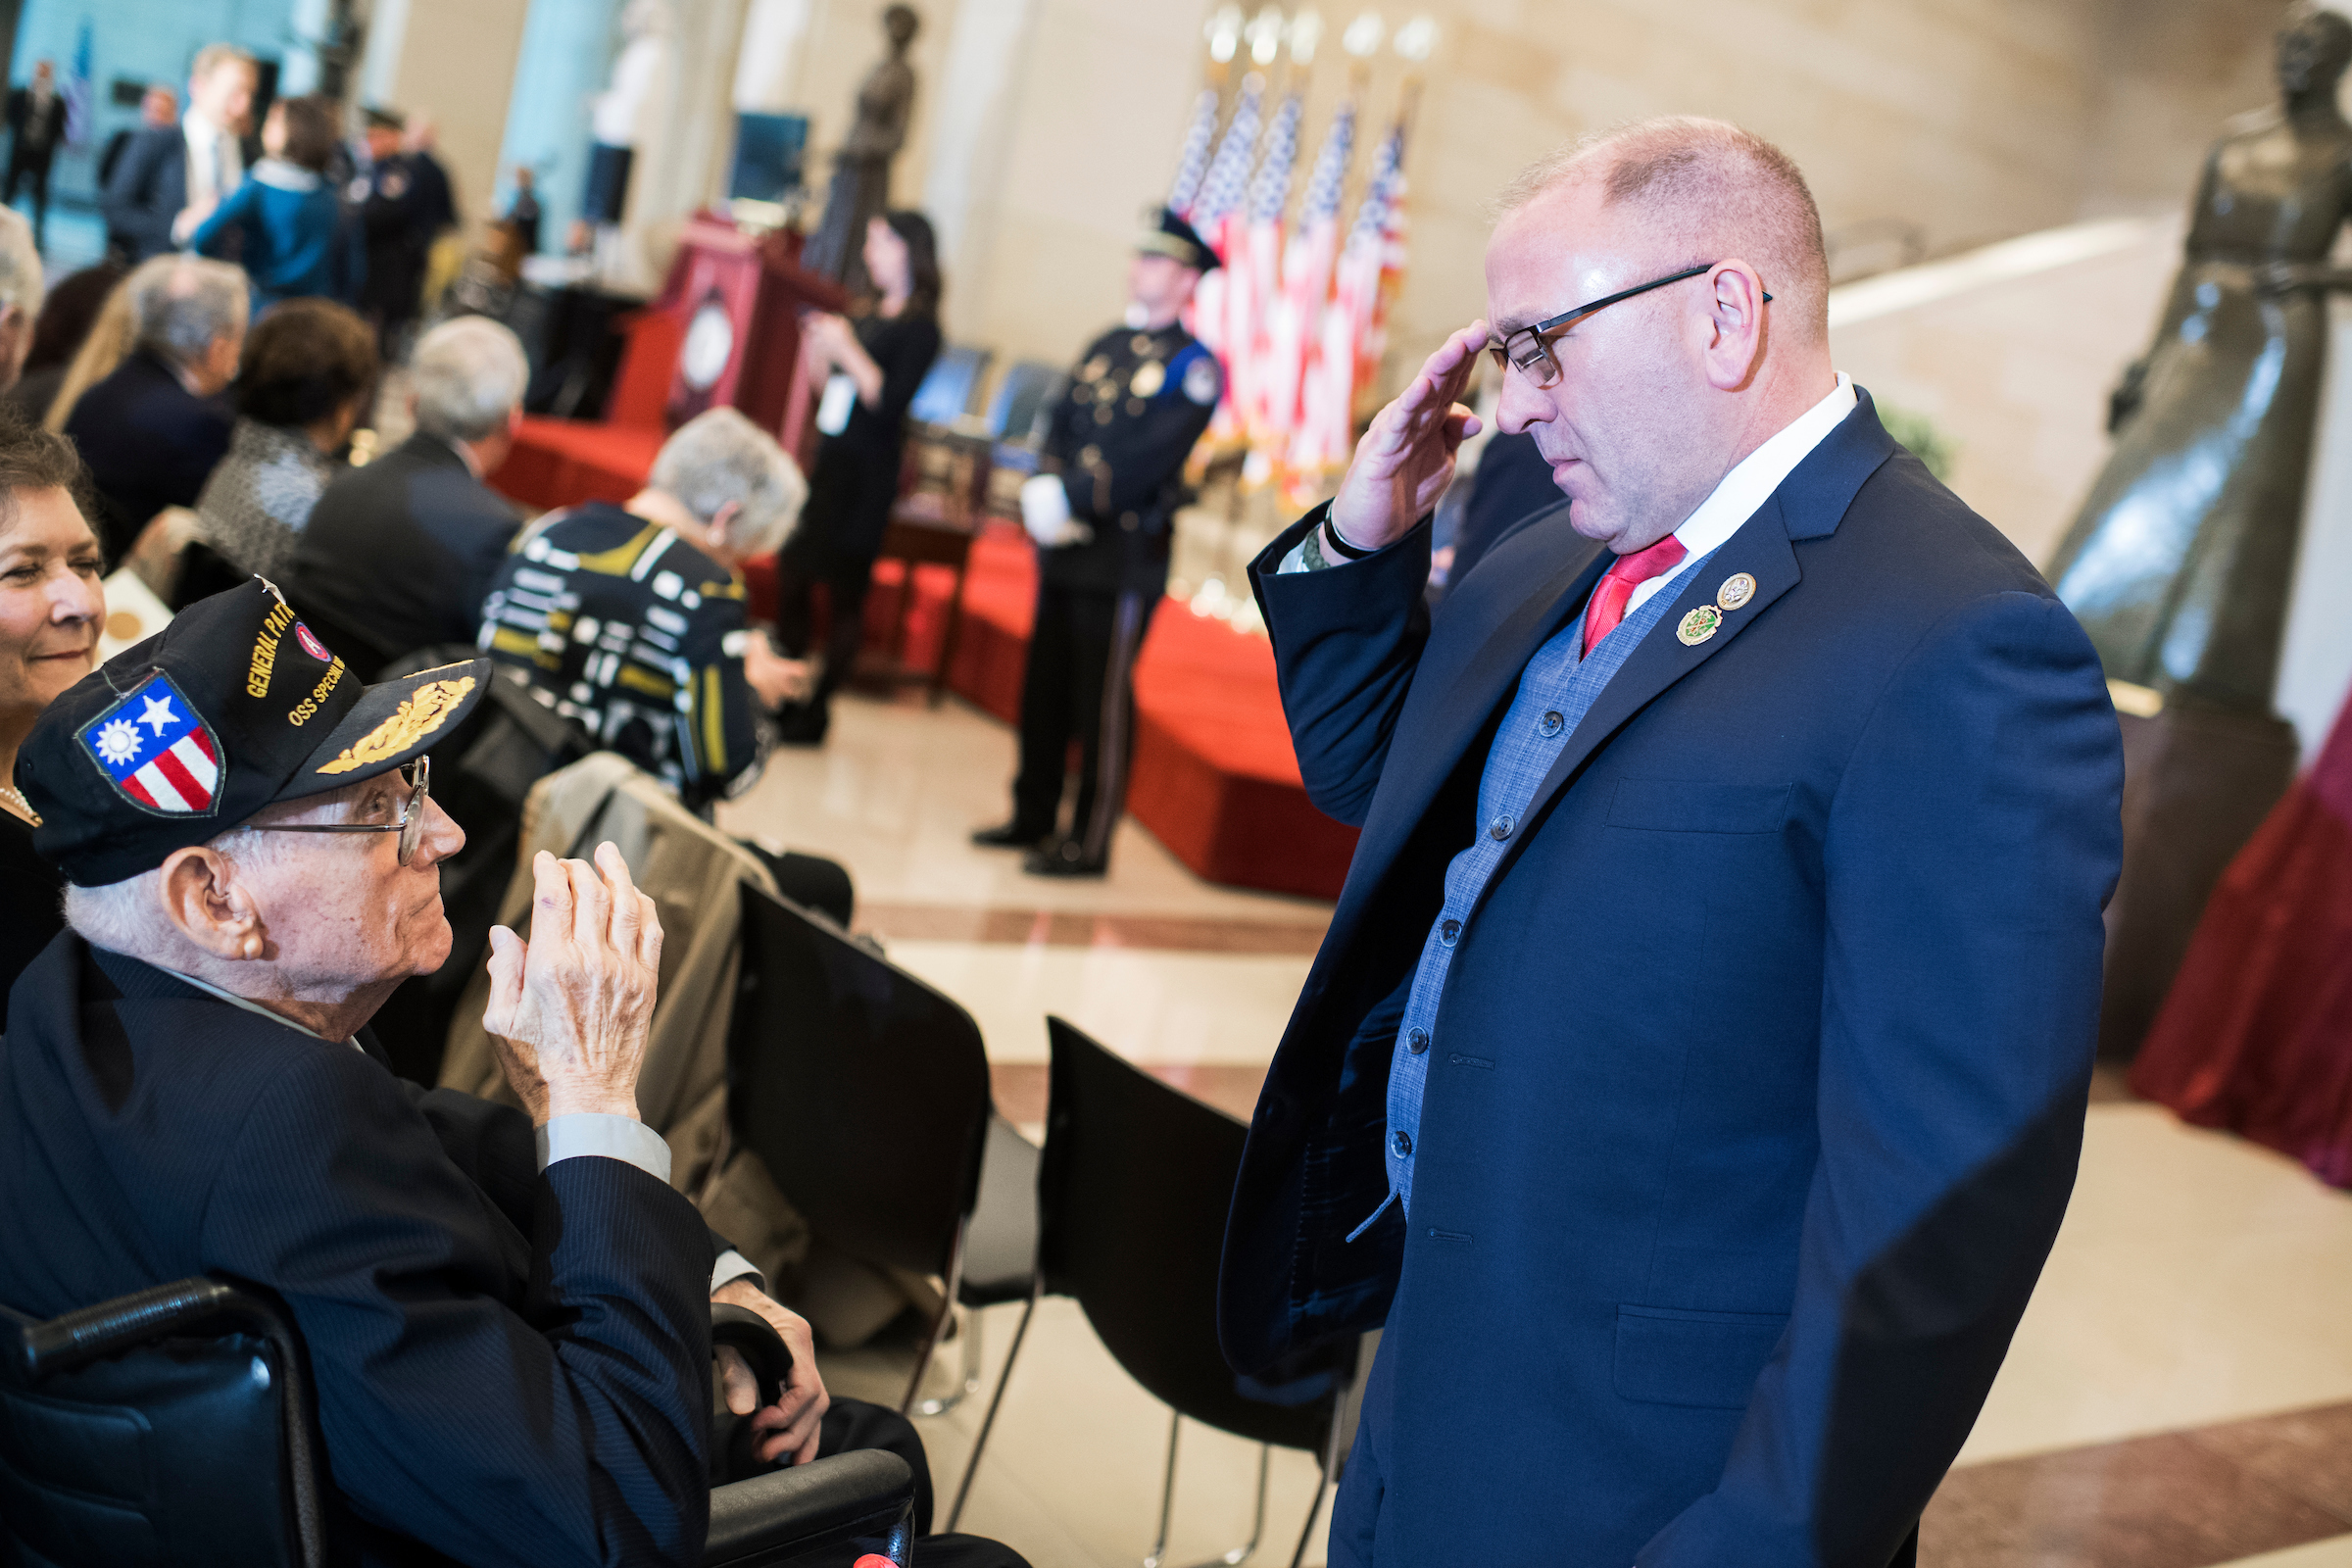 UNITED STATES - MARCH 21: Rep. Clay Higgins, R-La., salutes retired Army Brig. Gen. Robert LeBlanc, 96, of Abbeville, La., before a Congressional Gold Medal ceremony in Emancipation Hall to honor members of the Office of Strategic Services (OSS) on March 21, 2018. General LeBlanc served with the OSS in Europe and China during World War II. (Photo By Tom Williams/CQ Roll Call)